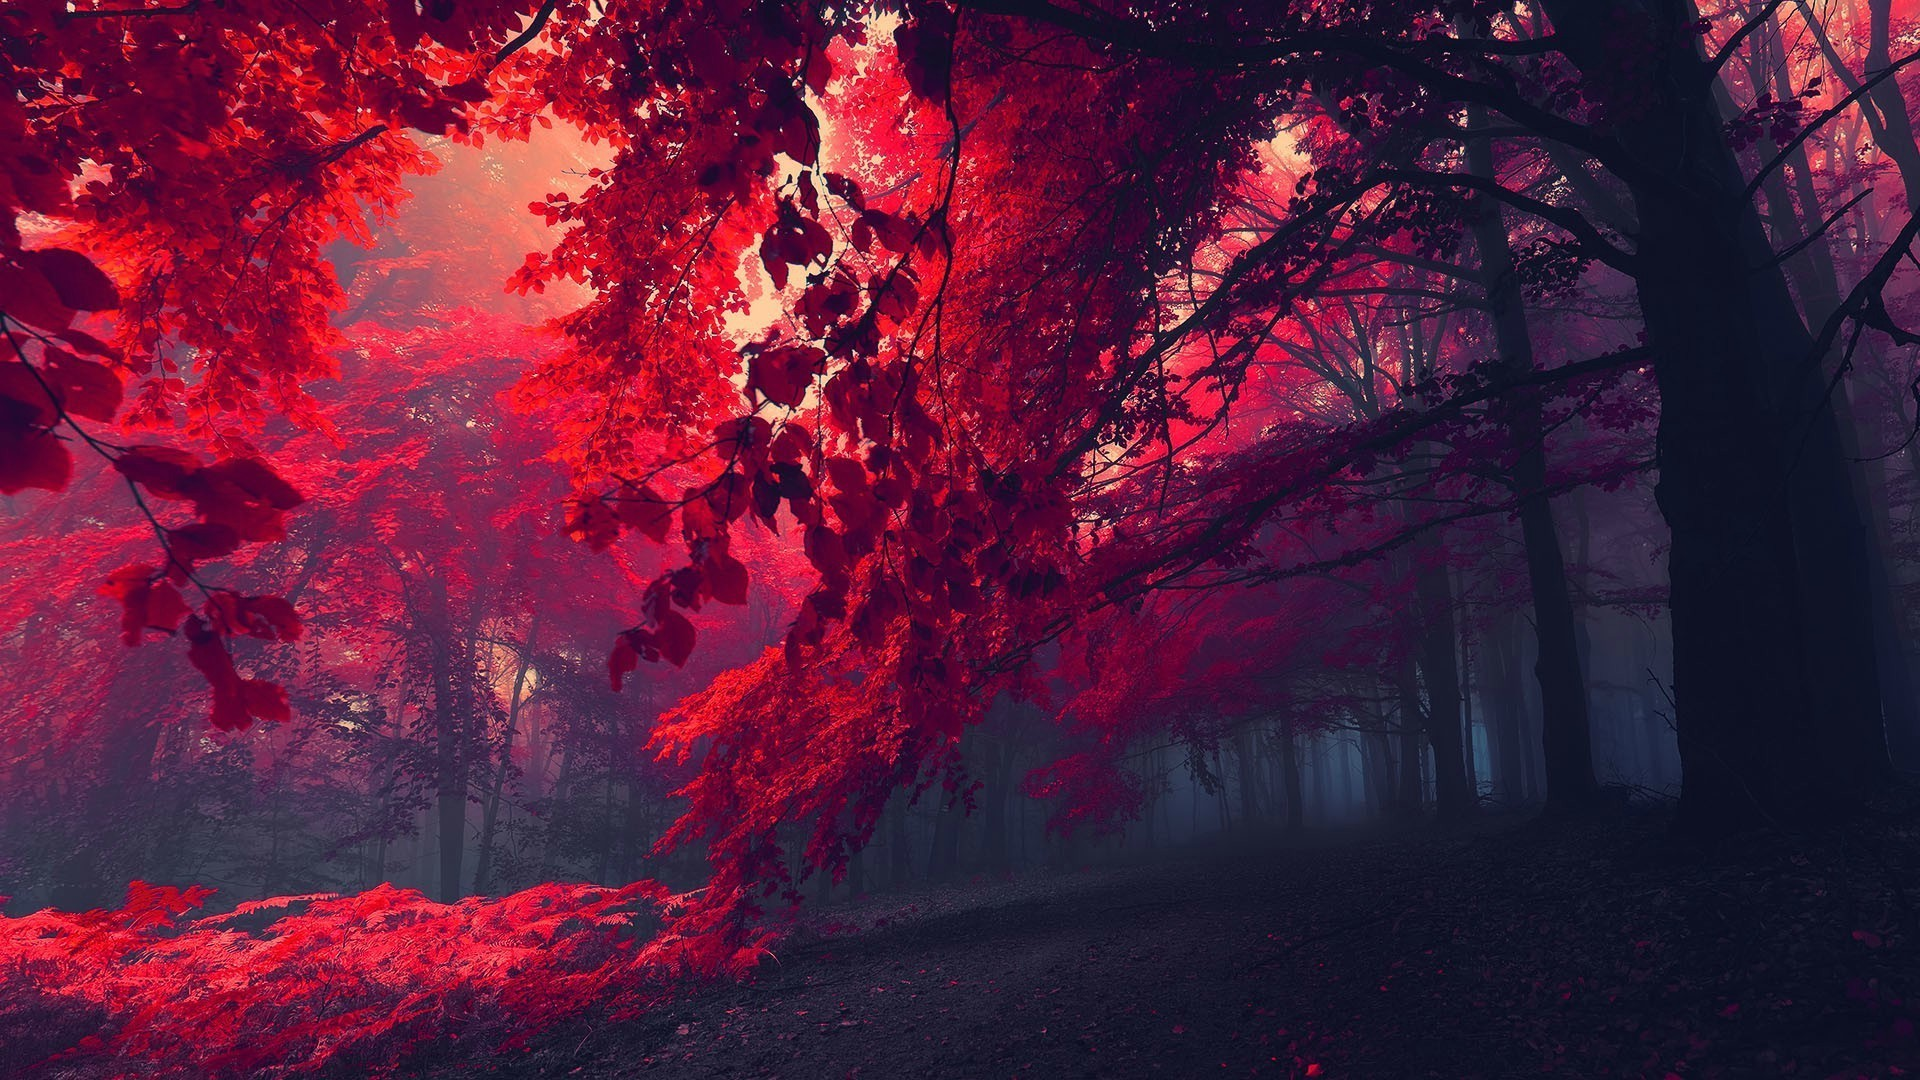 Red Nature Wallpaper 65 Images